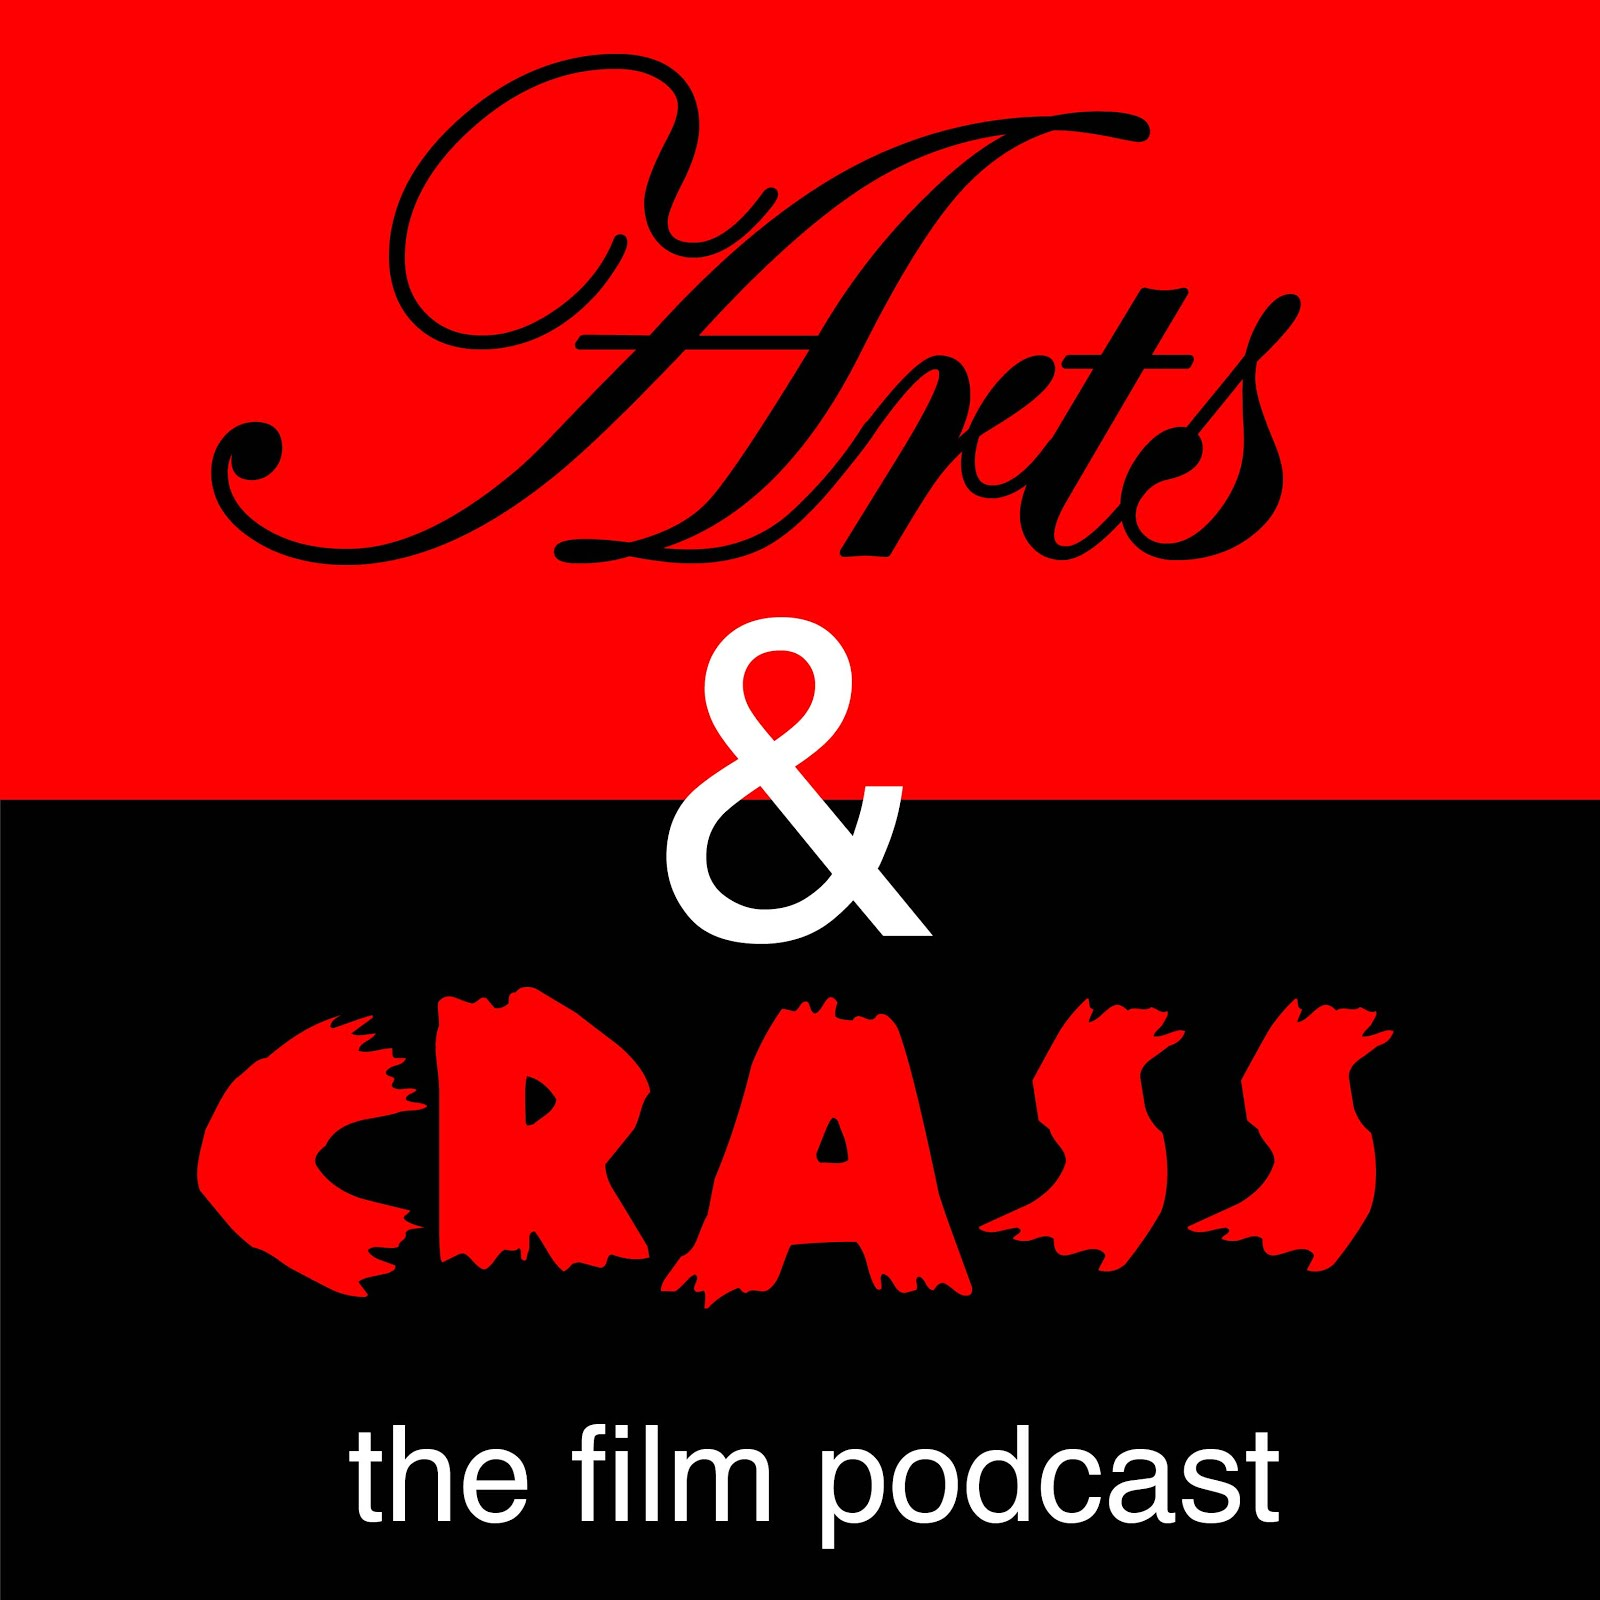 Arts & Crass: The Highbrow Lowbrow Film Podcast